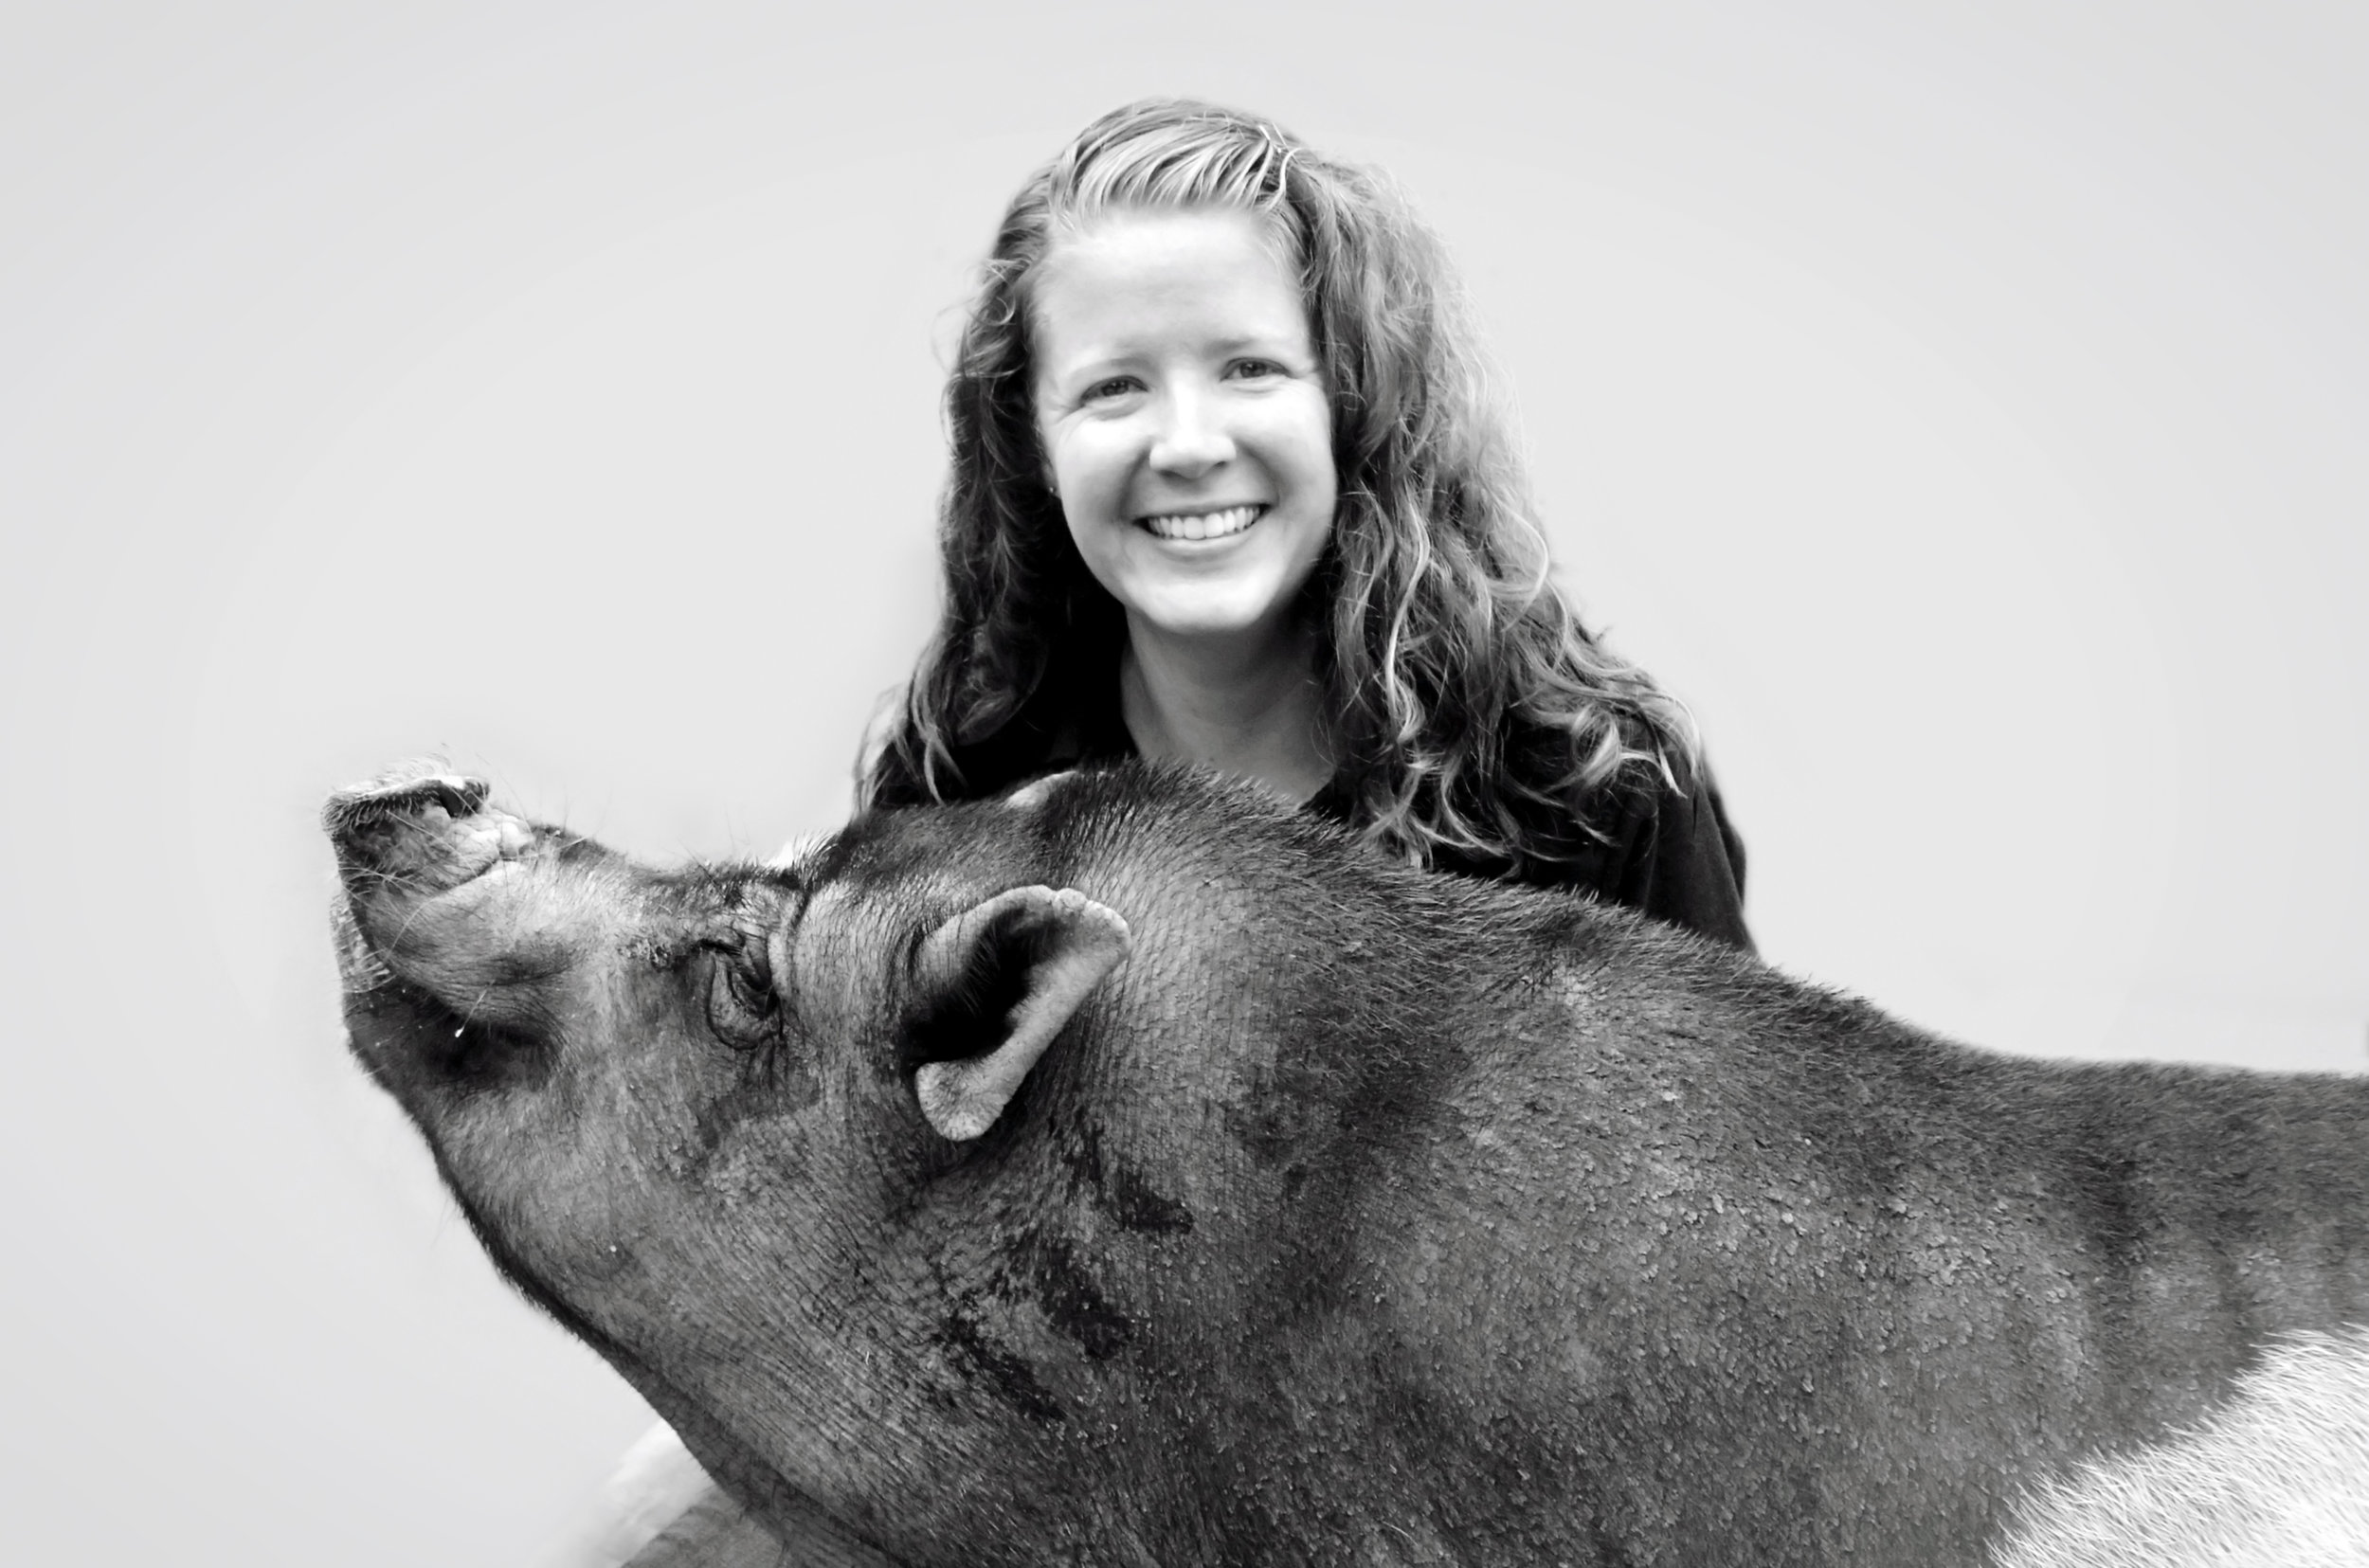 Gabrielle's love of animals, proven by her experience as a puppy raiser for The Seeing Eye, Inc., brought her to volunteer at Pony Power in 2005. From the start, Gabrielle has had a special affinity for our two pigs – Ziggy and Piper. She was asked to join the team as a full-time office manager following her 2010 graduation from Ramapo College of New Jersey where she earned a bachelor's in international studies and a minor in anthropology.